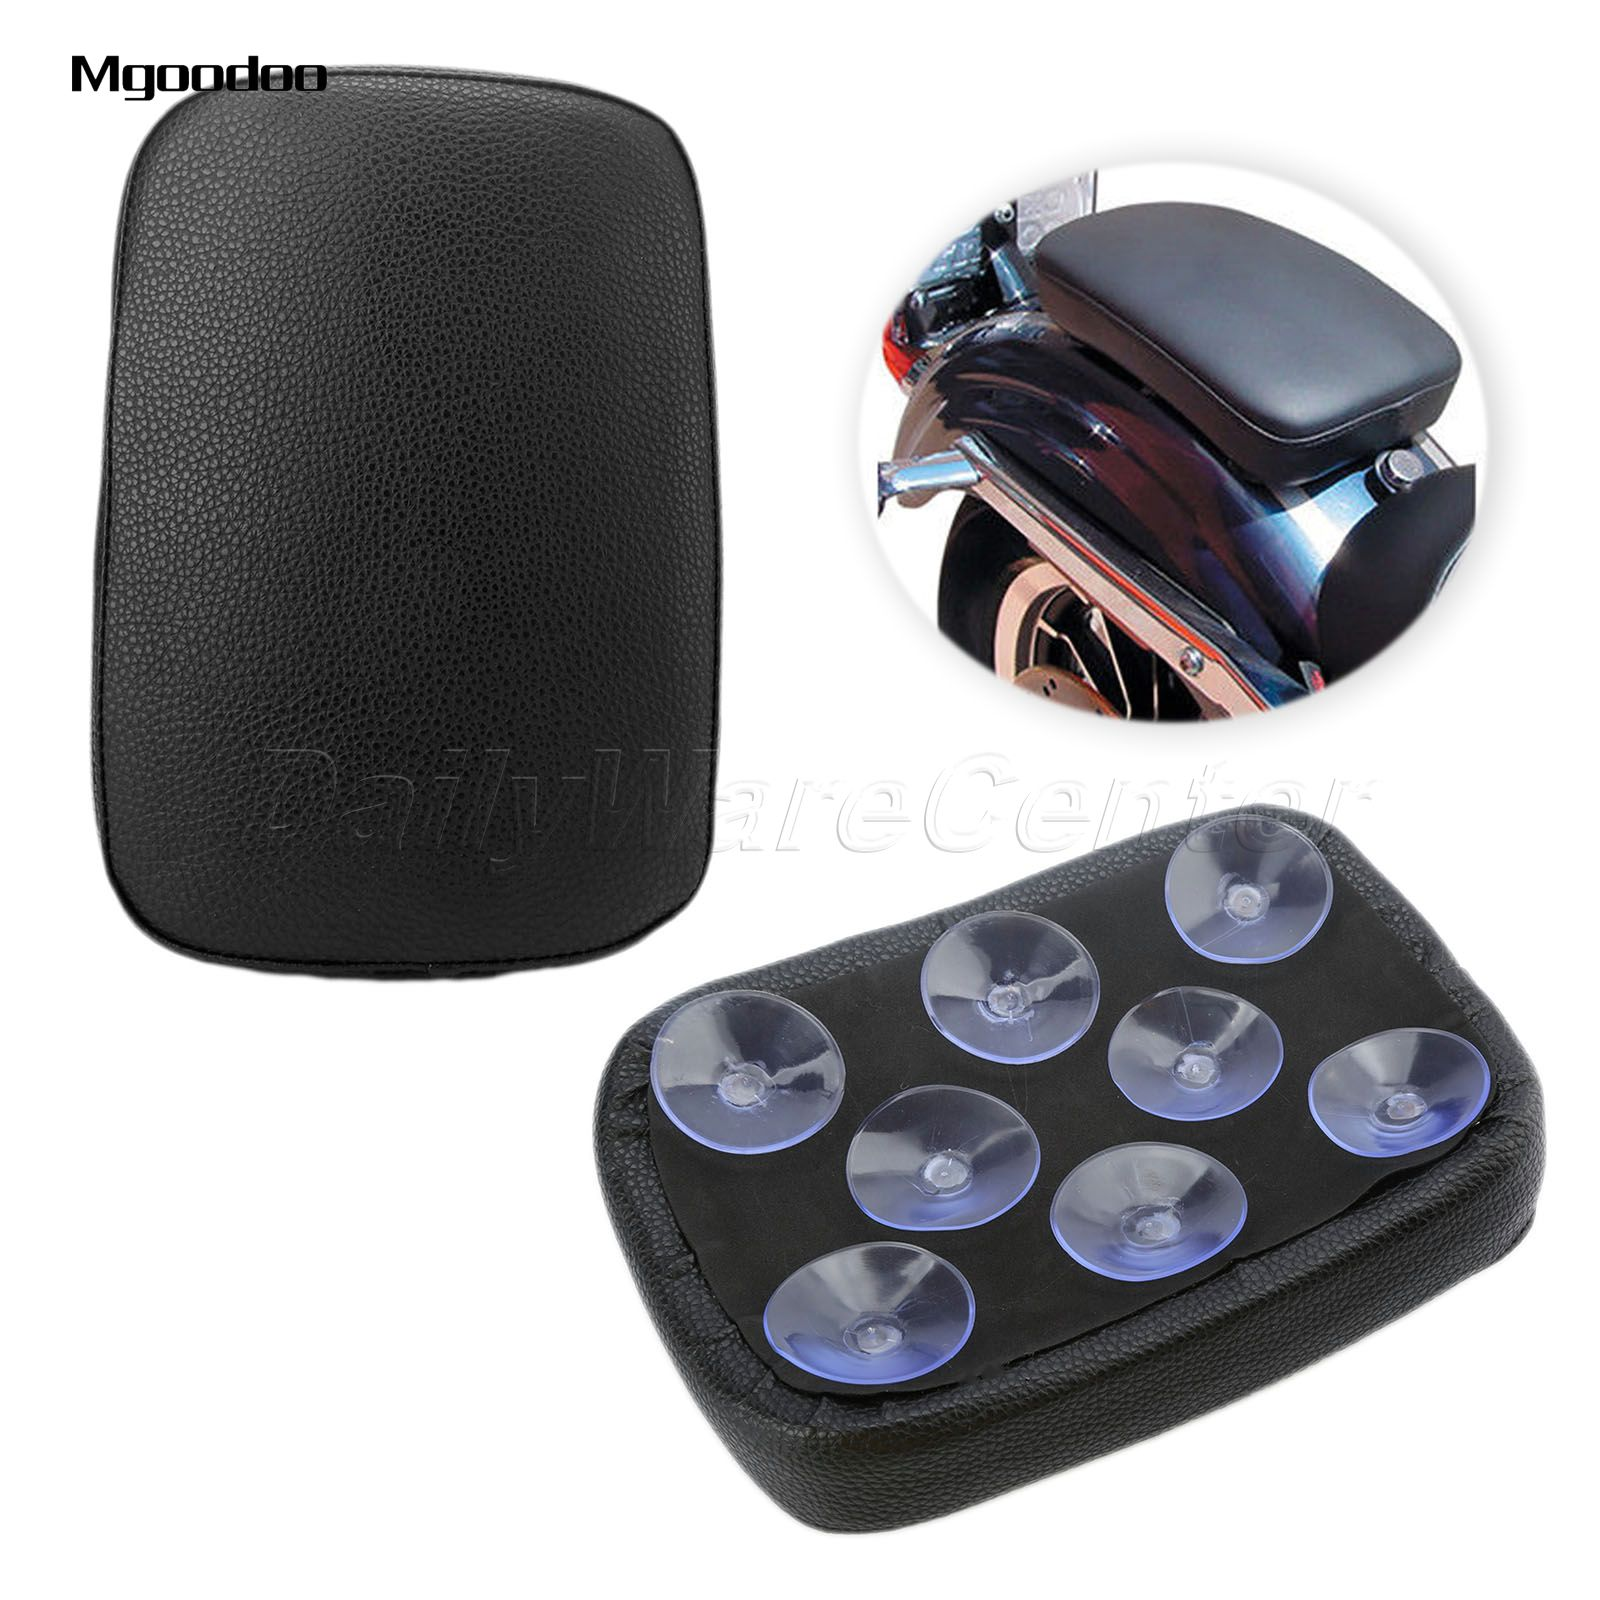 Mgoodoo Motorcycle Rear Passenger Cushion Seat Pad Pillion 8 Suction Cups For Harley Dyna Sportster Softail Touring Xl 883 1200